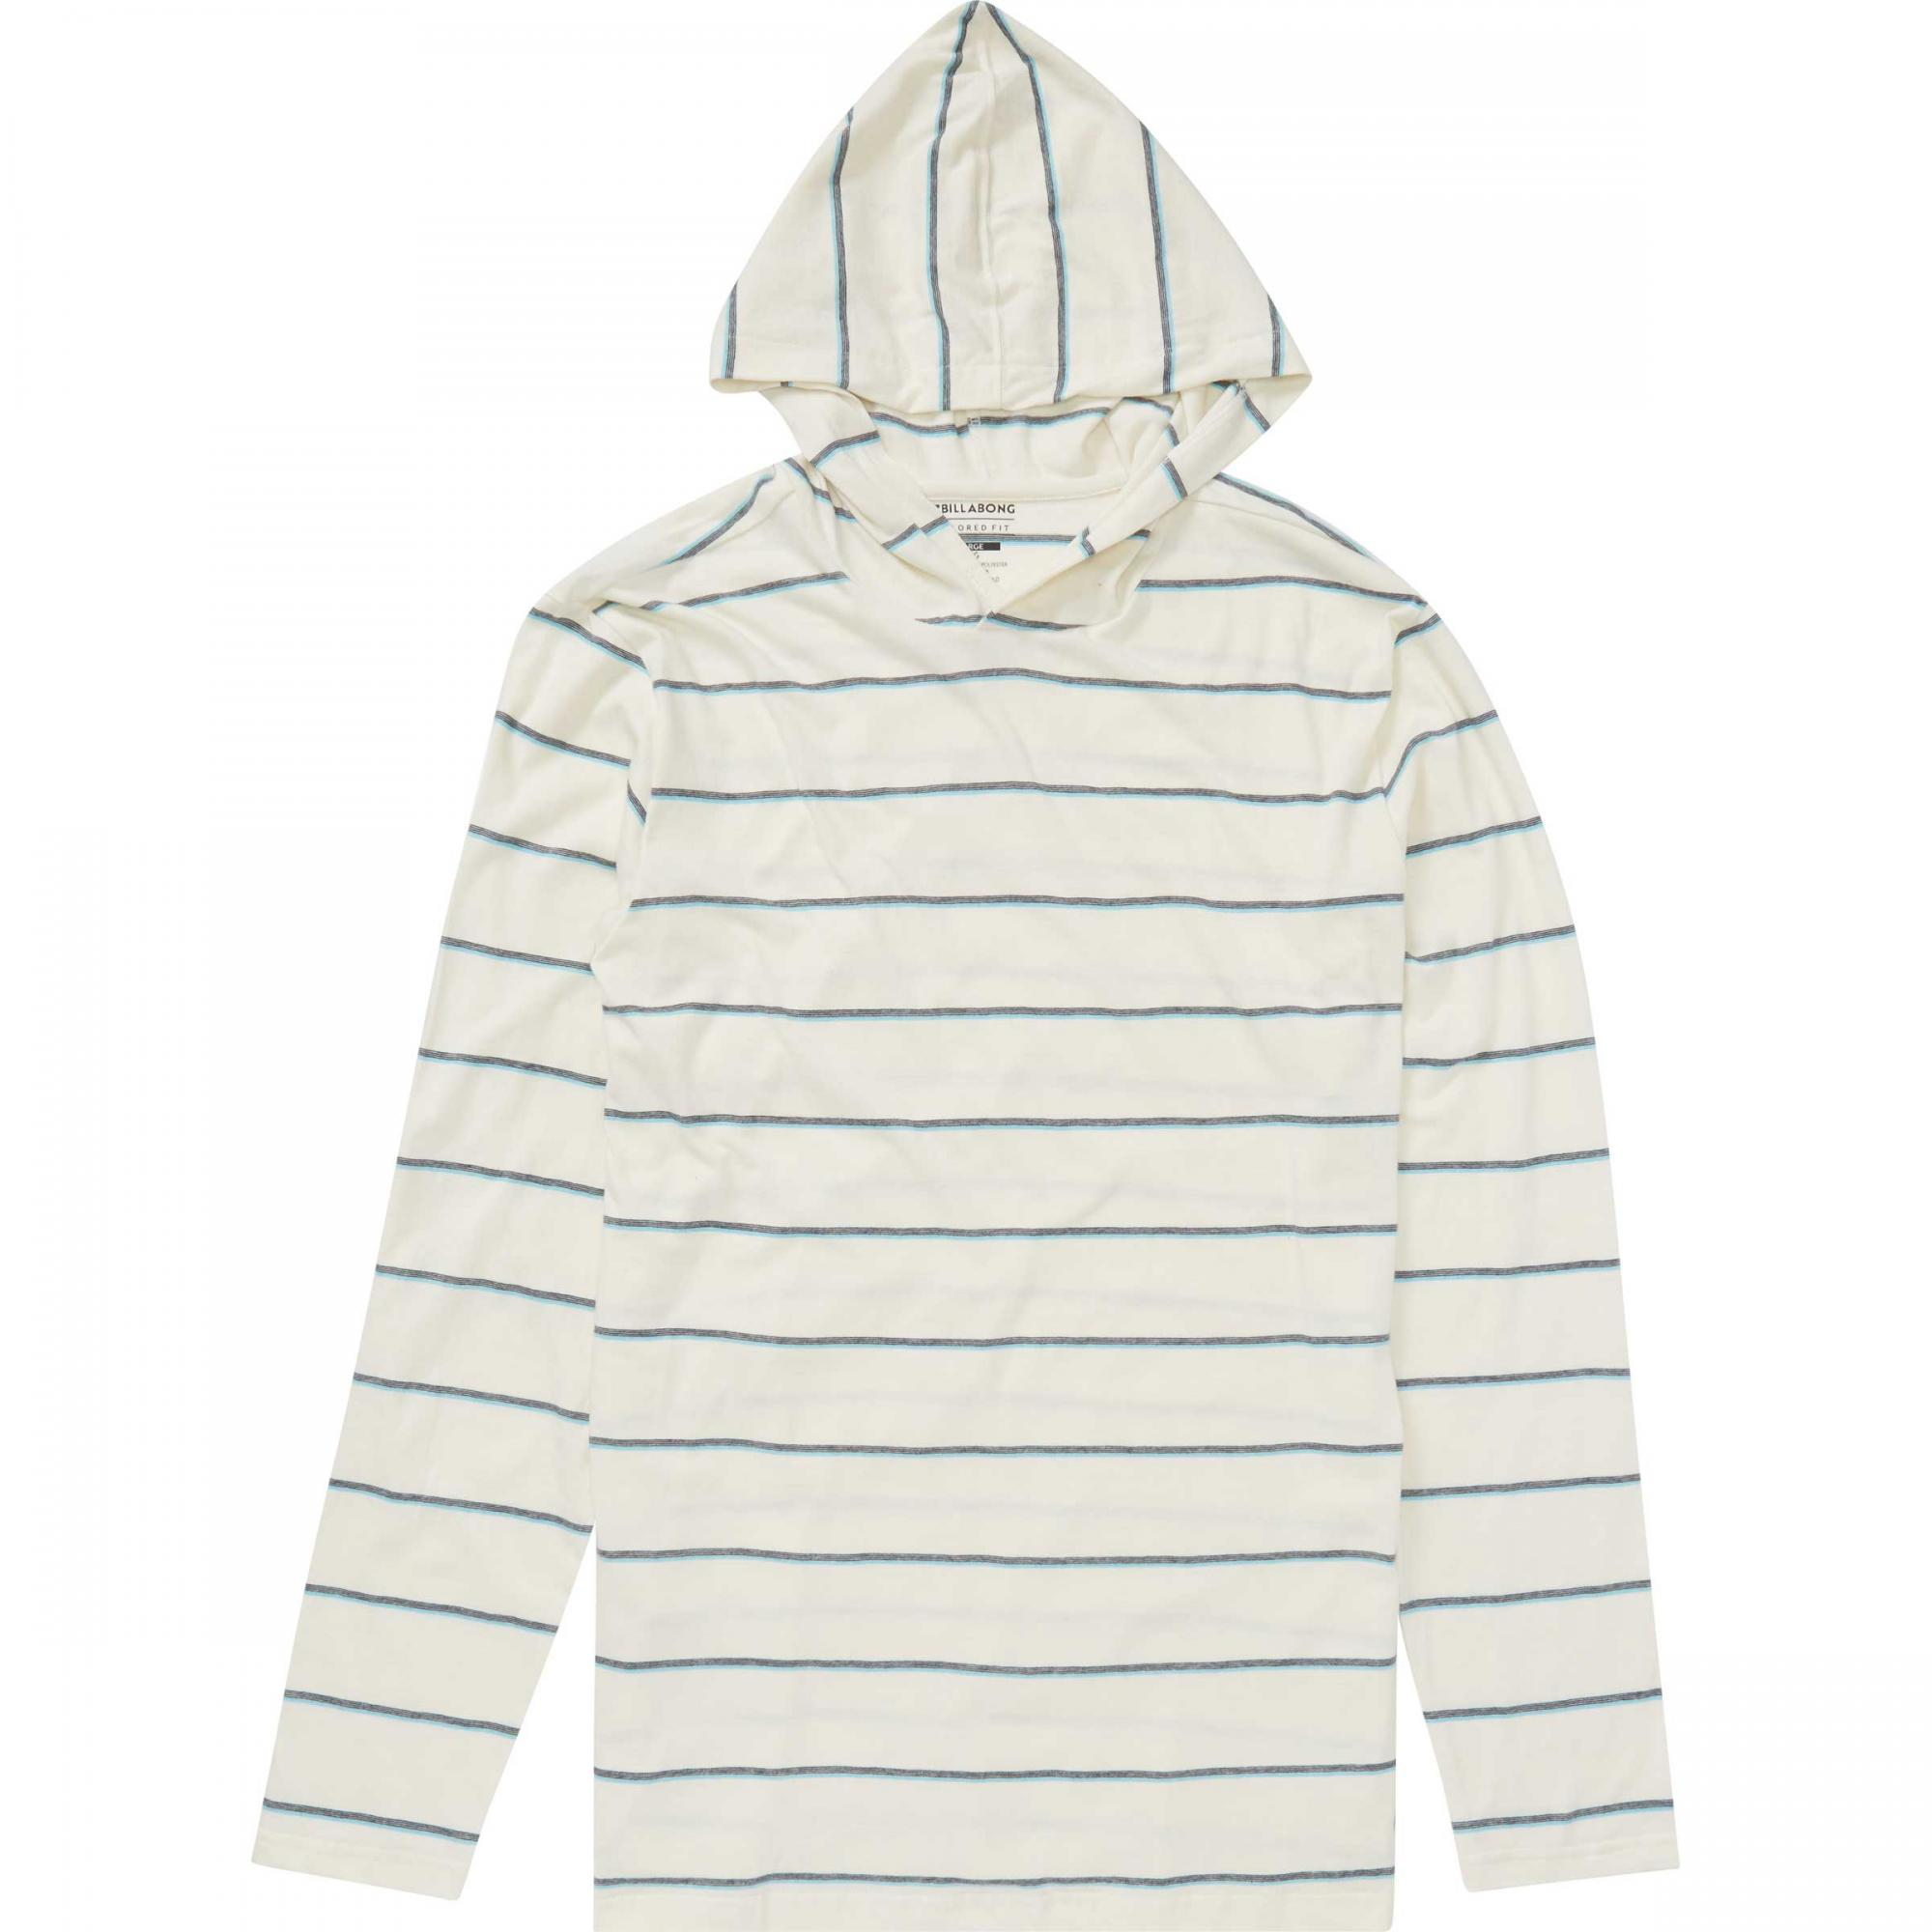 Pullover Hoodie Cut Billabong Mens Die Cut Stripe Pullover Hoodie Salt White Hoodies Fleece Punch Fit Cyprus